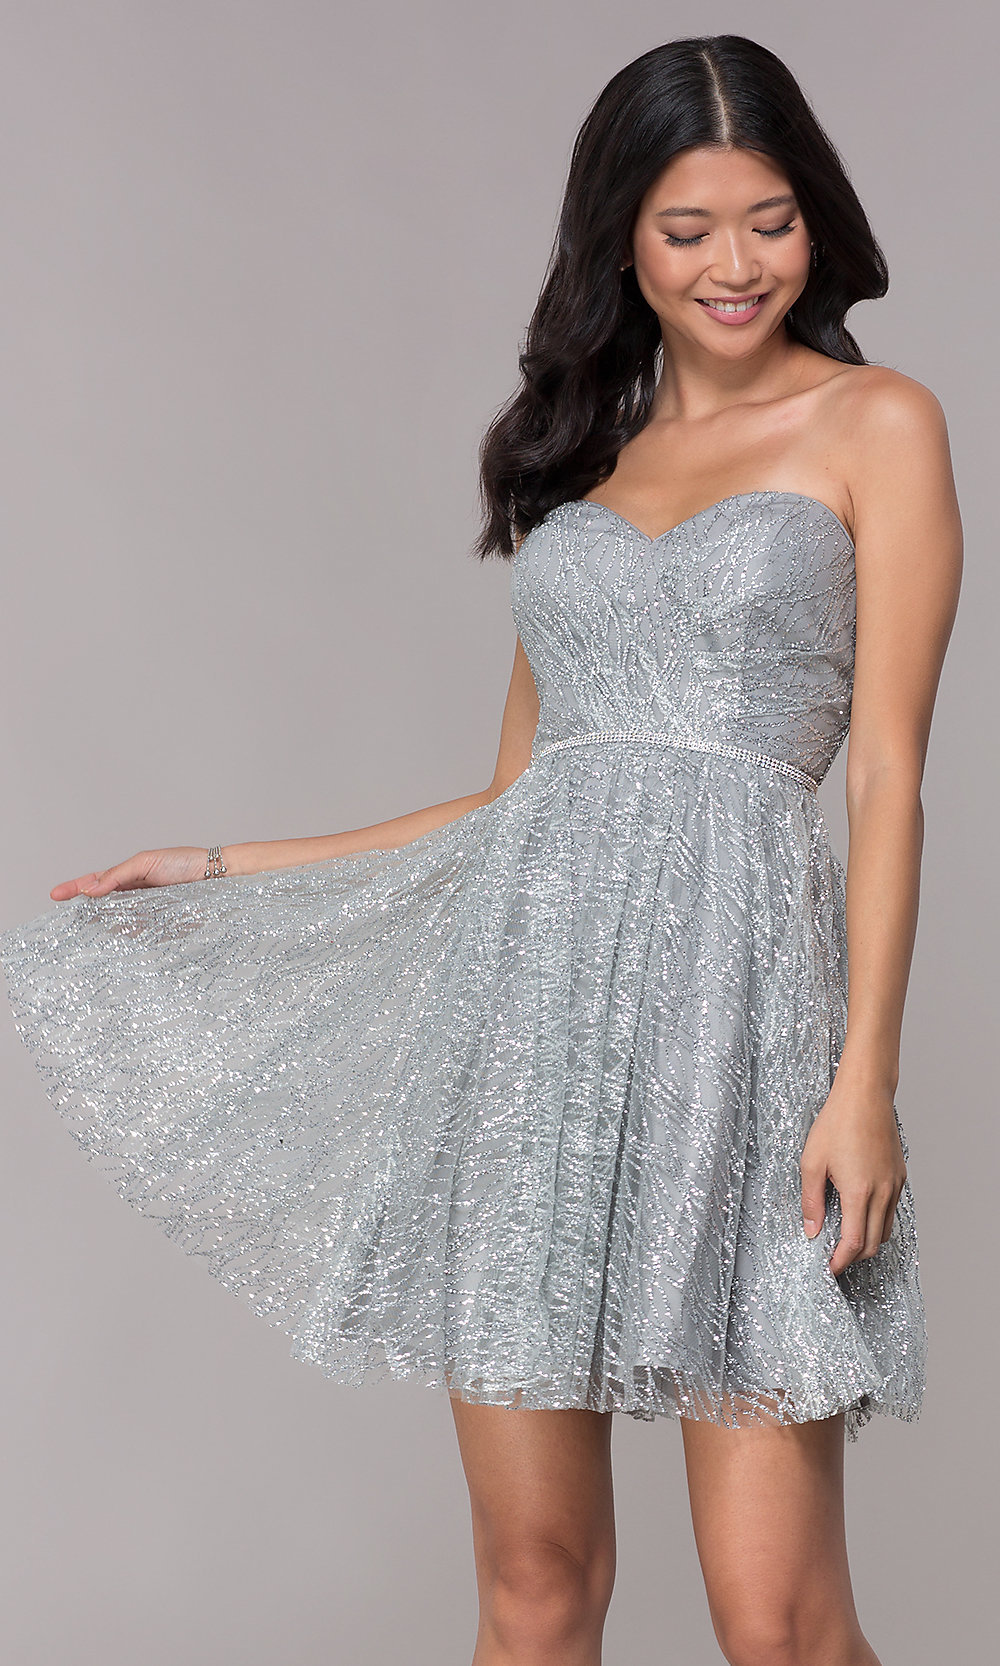 new arrivals stable quality hot-selling authentic Strapless Silver Glitter-Print Homecoming Dress